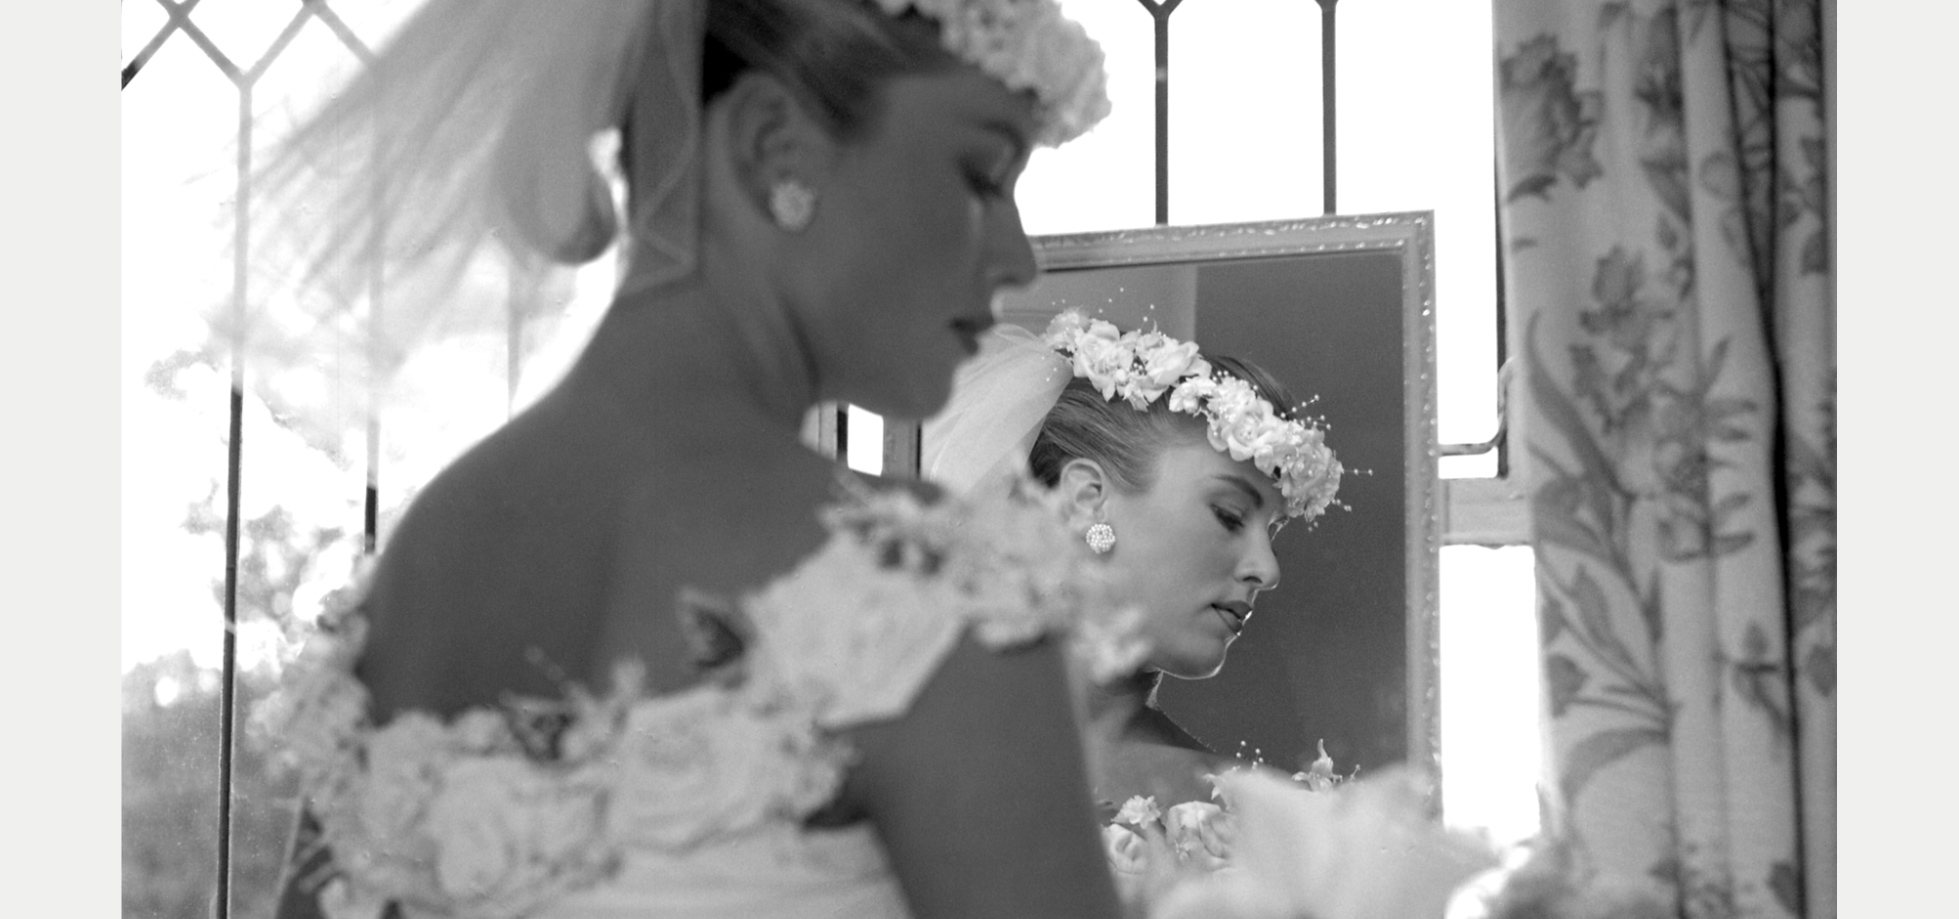 Bride with bouquet, mirror and window.